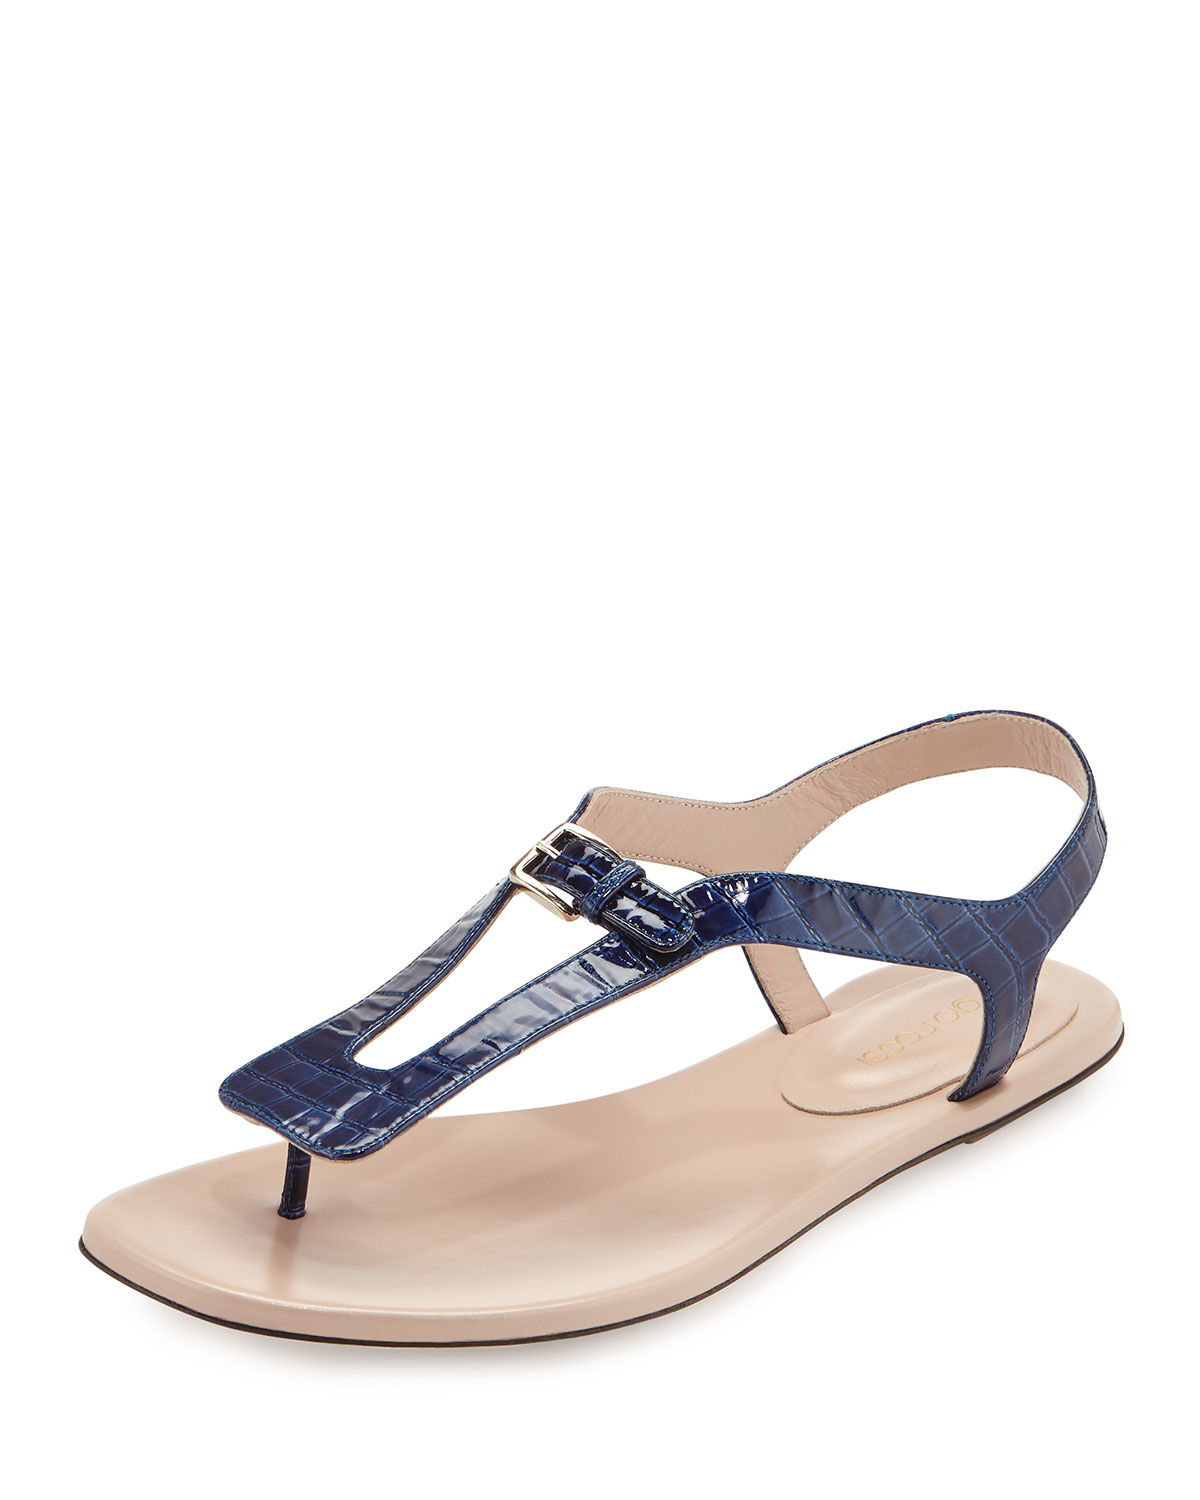 Lyst - Sergio Rossi Embossed Leather Slingback Sandal in Blue